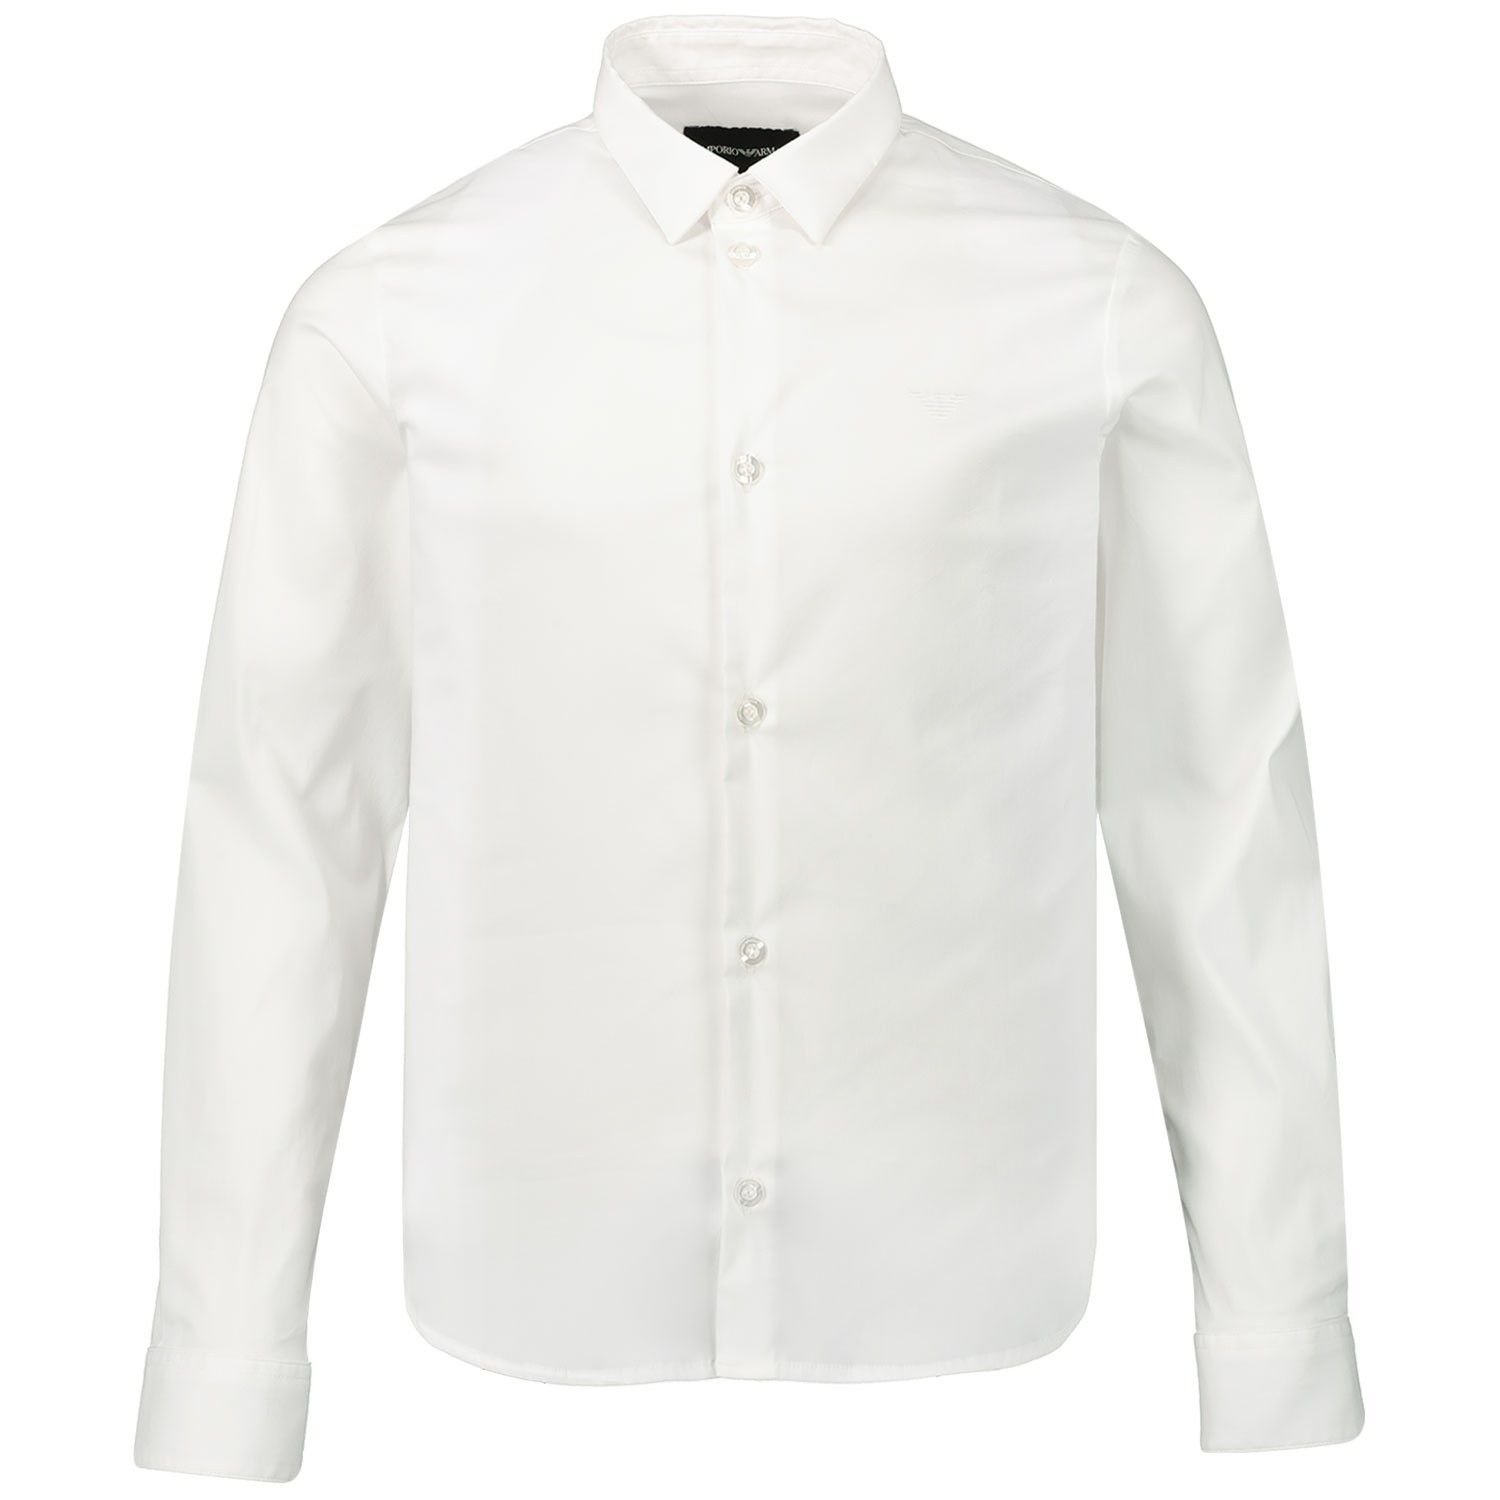 Picture of Armani 8N4C09 kinder overhemd white